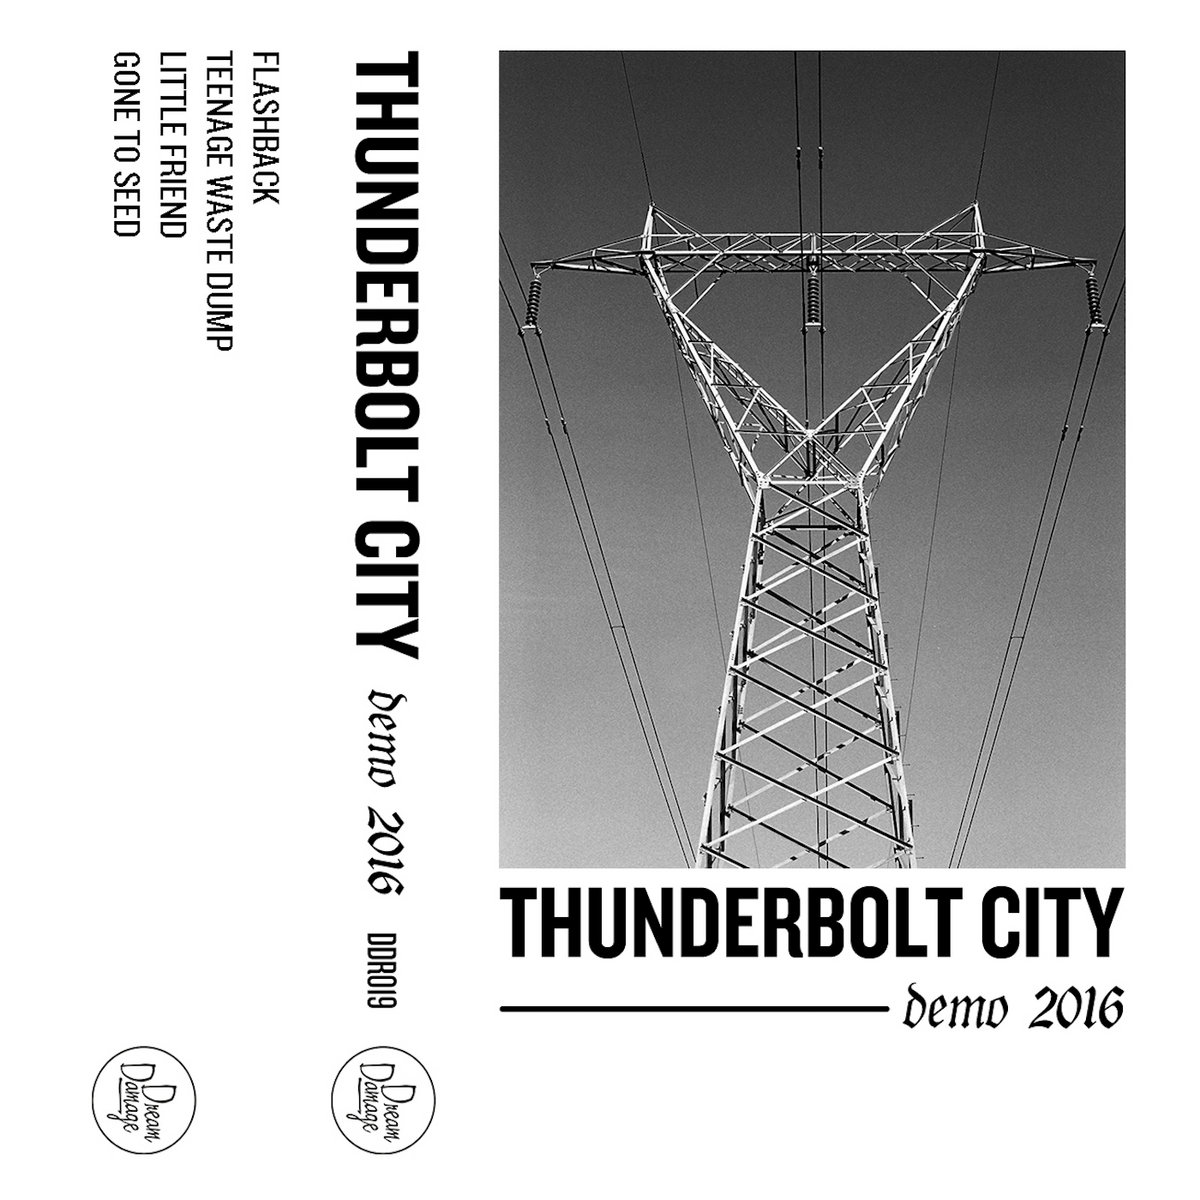 Thunderbolt city dating profile